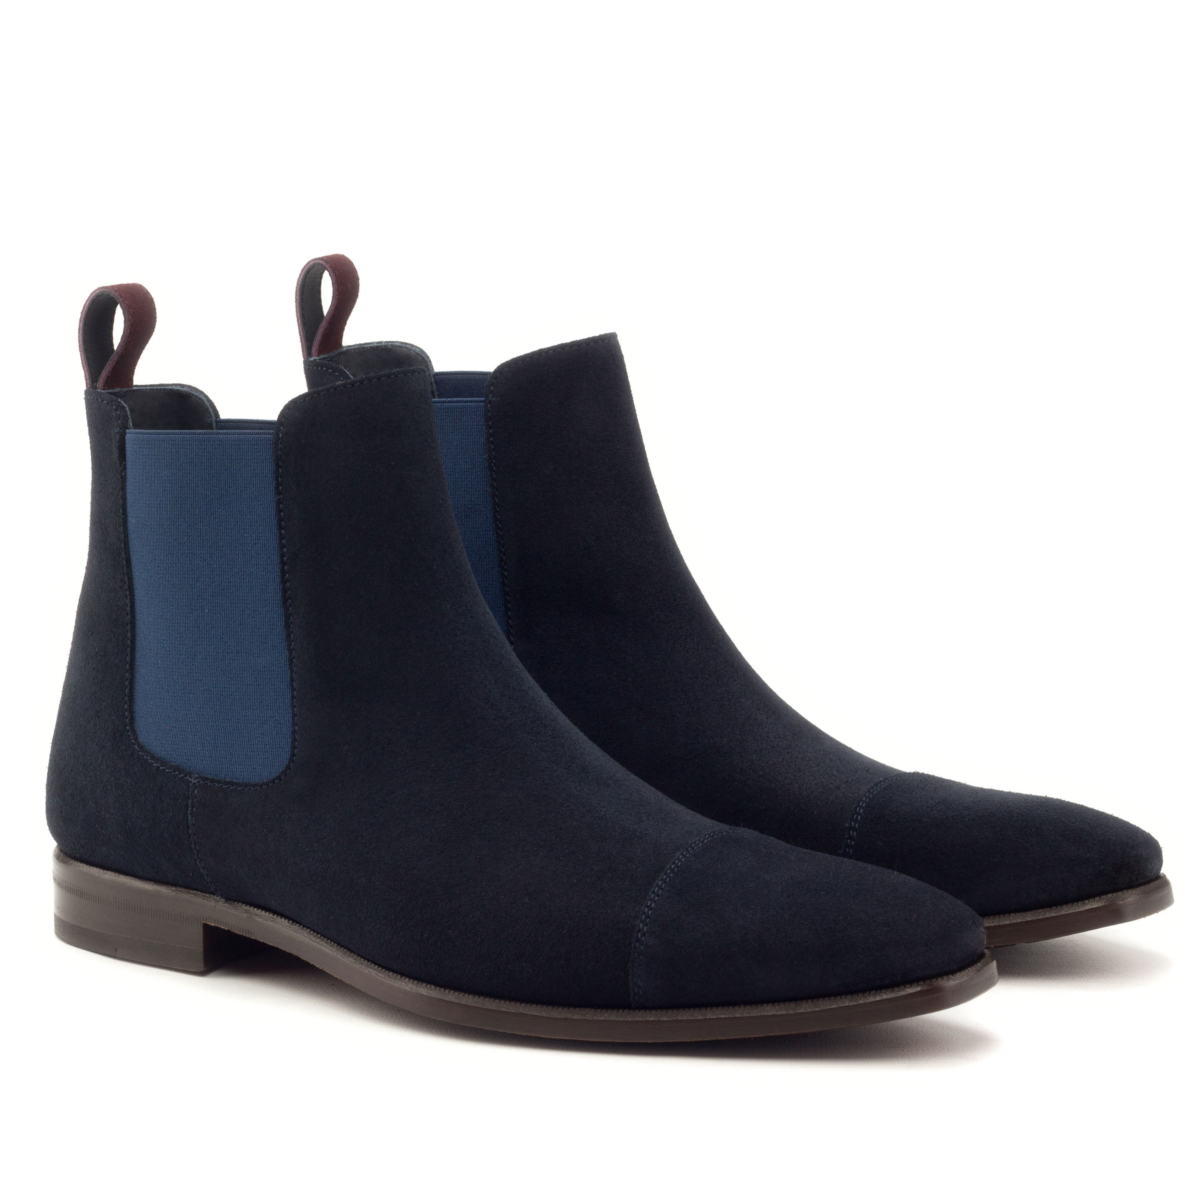 9c083c33fe0b7 Navy blue suede Chelsea boot - Cambrillón Bespoke Leather